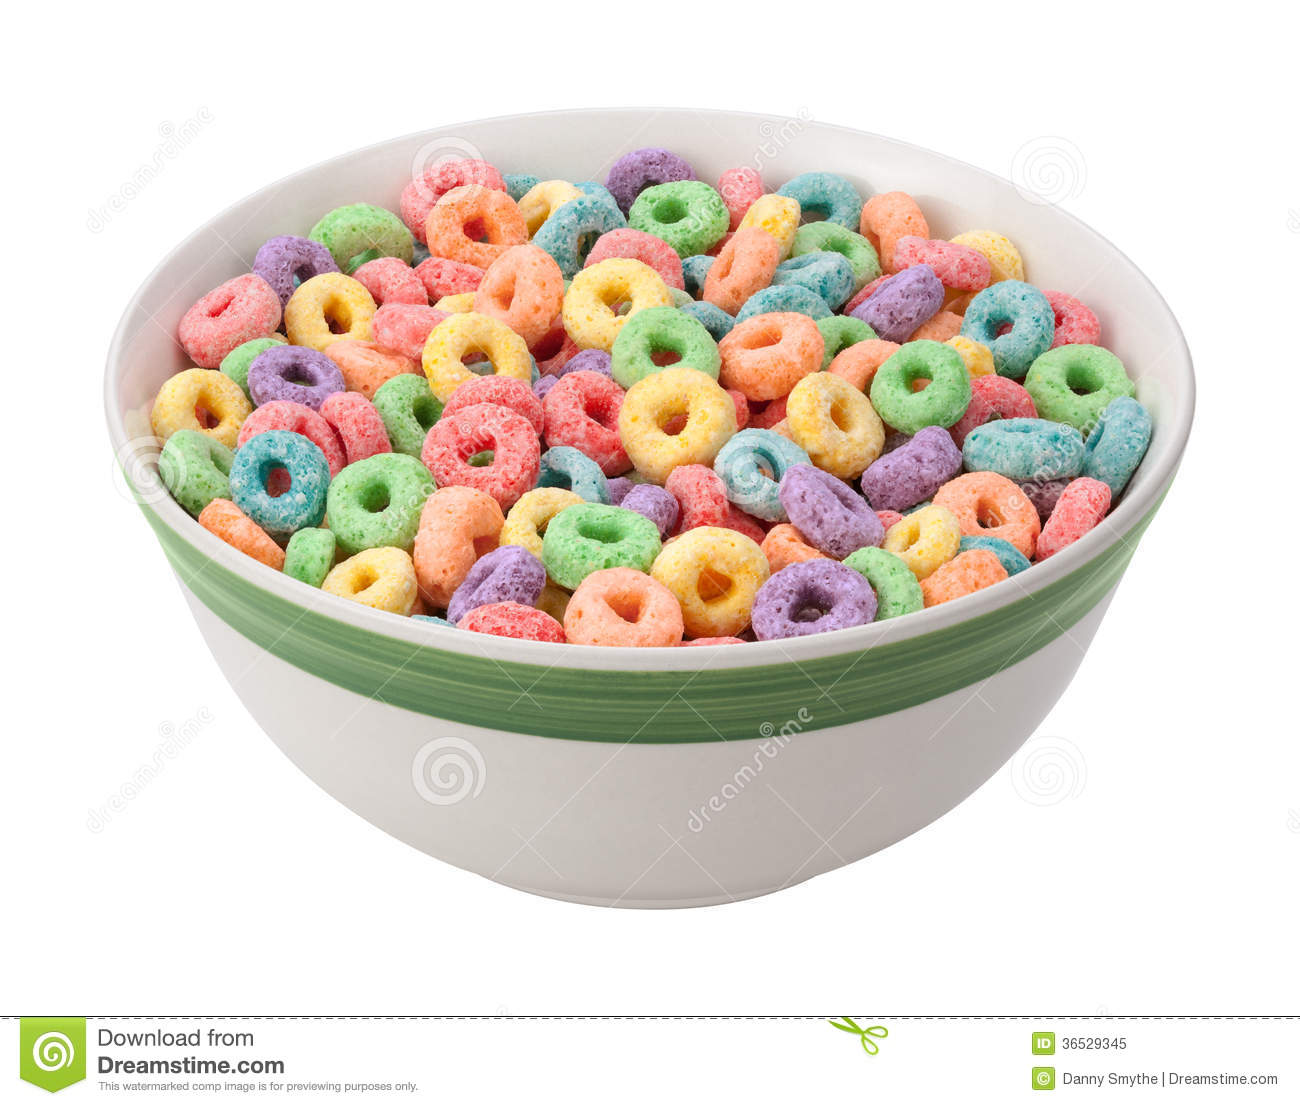 Cereal clipart transparent Isolated Cereal Multicolored transparent Cereal